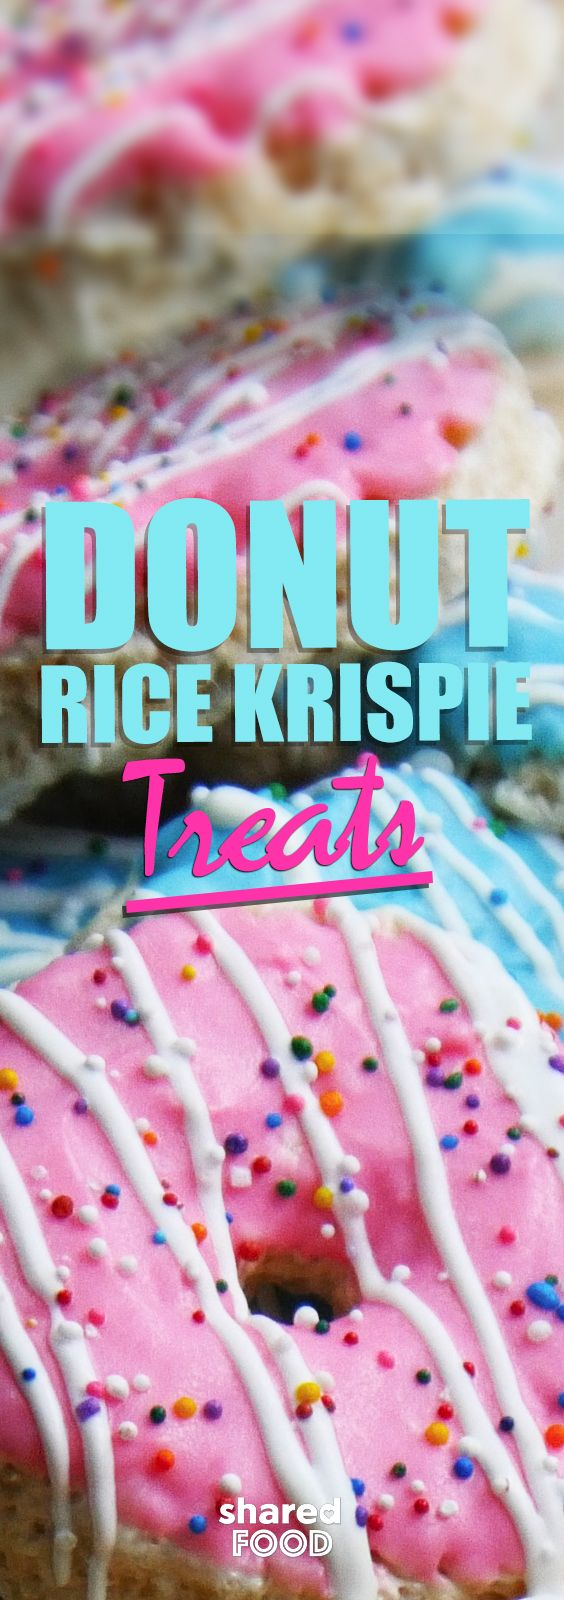 Ok, rice krispie squares + donuts = Donut Rice Krispie Treats! Get the kids to help with this one, decorate a dozen of these anyway you want! All the great taste of rice krispie squares with a visual upgrade!